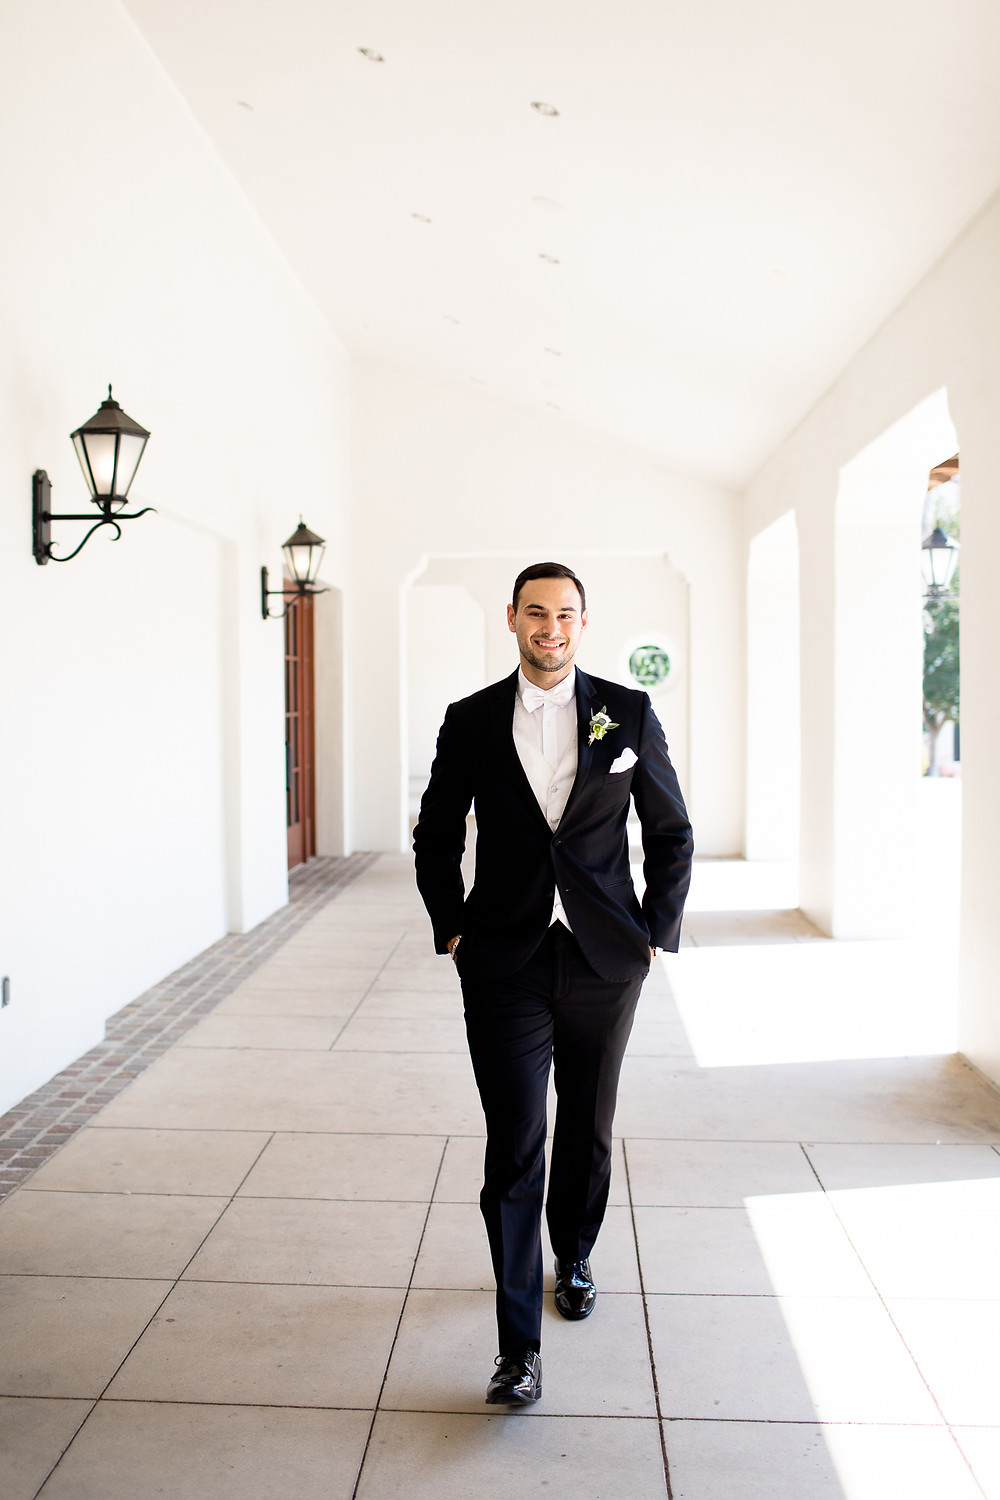 groom smiling and walking towards the camera